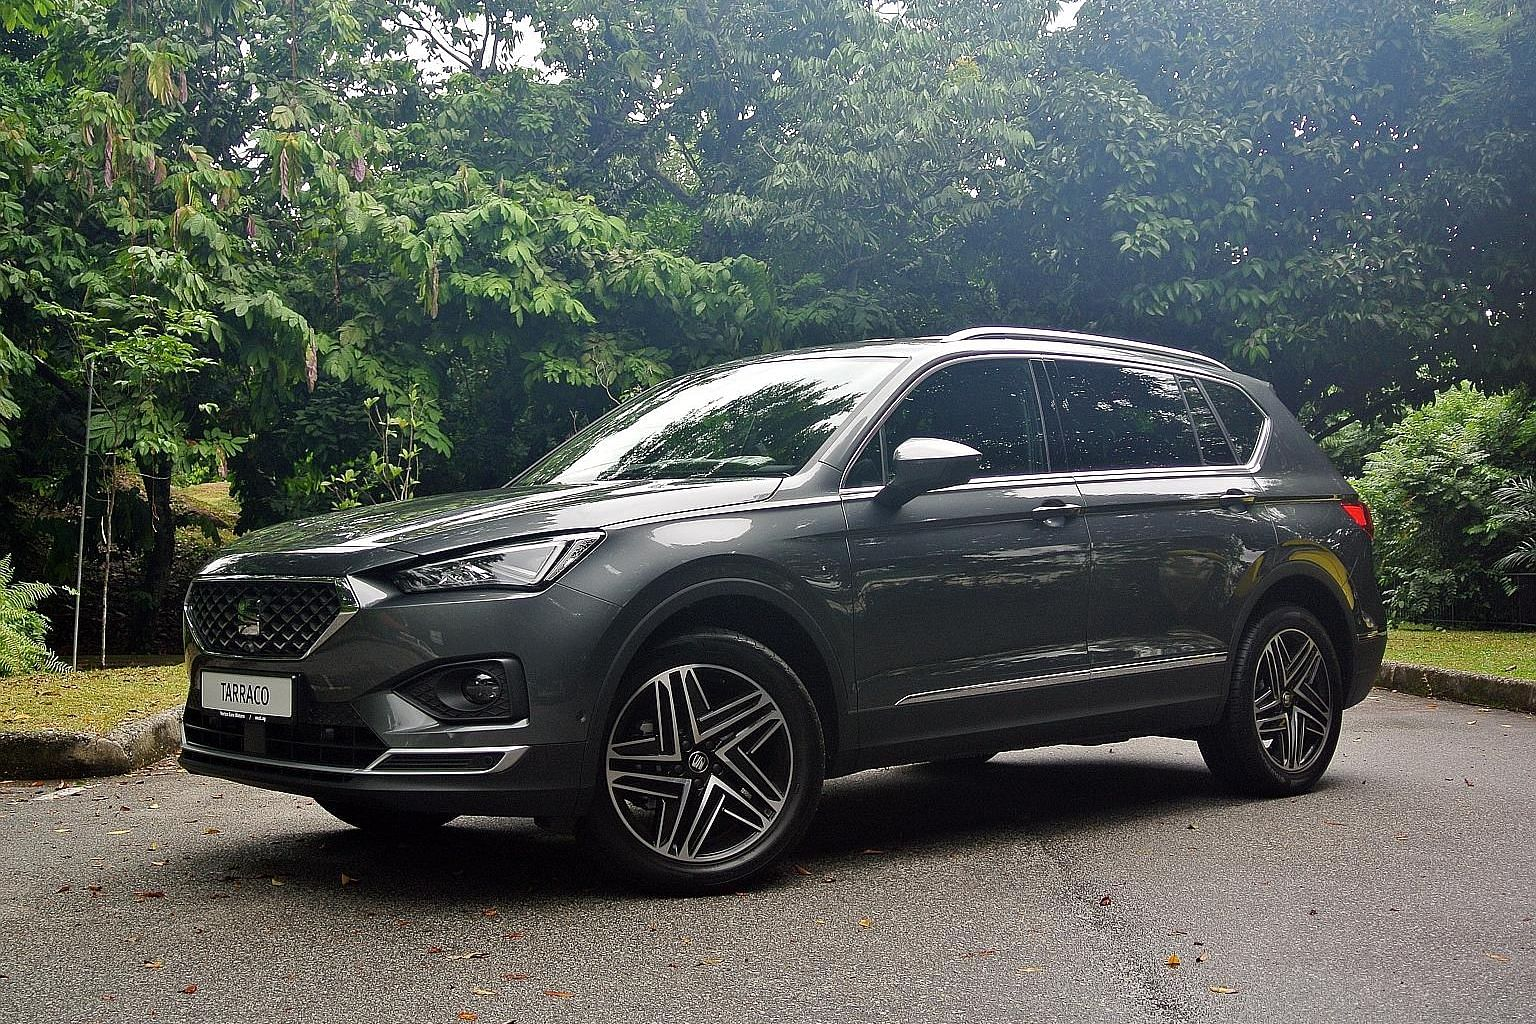 The Seat Tarraco comes with a full-digital instrument panel and a 360-degree parking camera as well as adaptive cruise control and lane assistance.